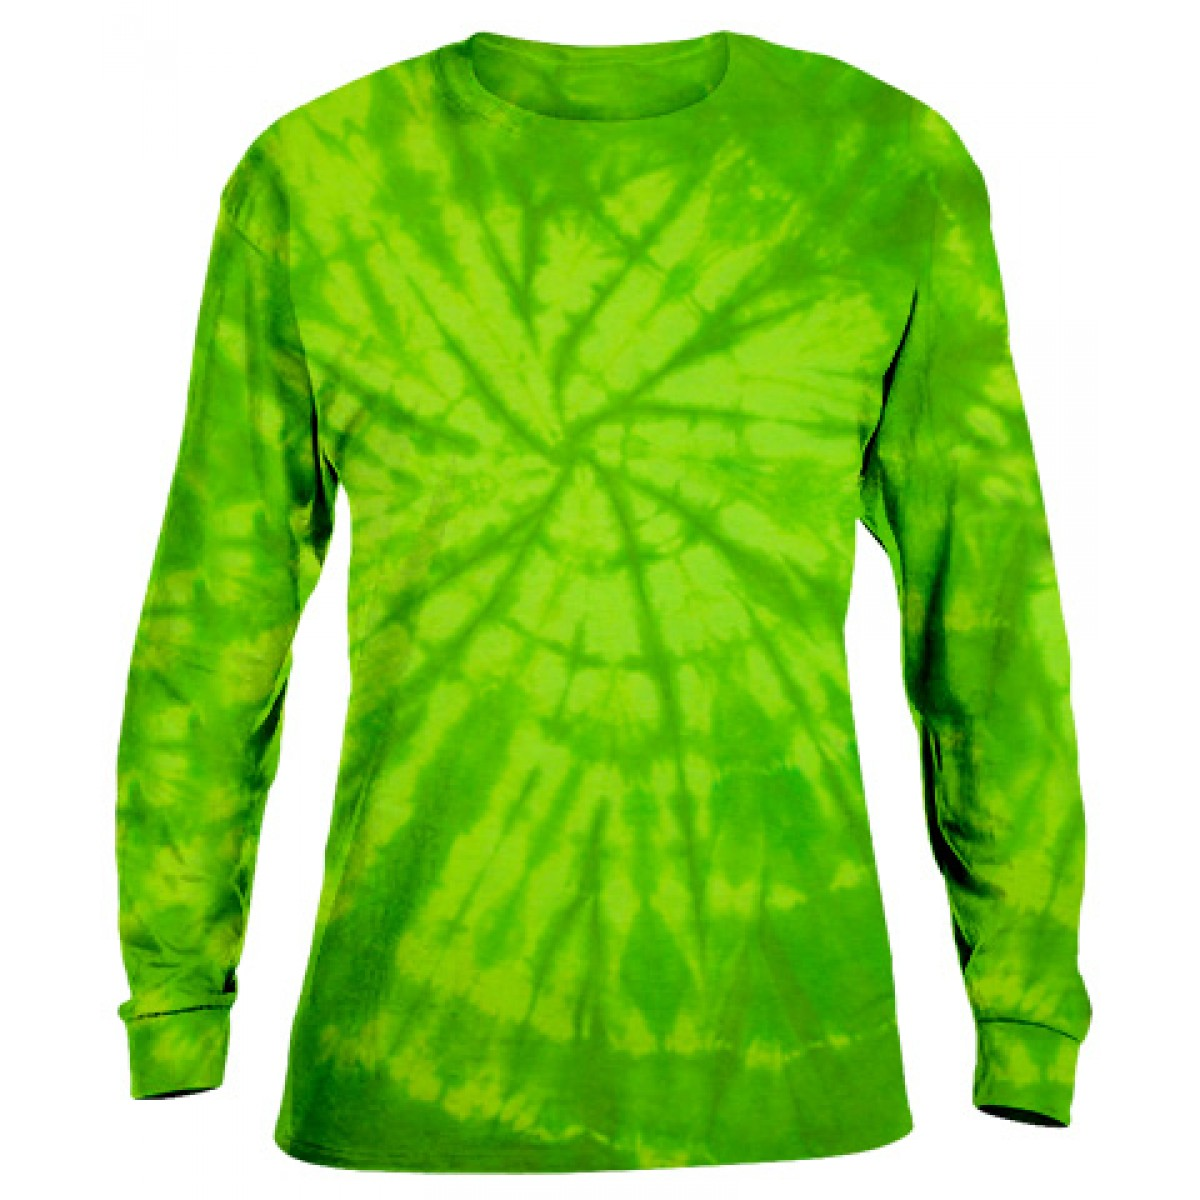 Tie-Dye Long Sleeve Shirt -Lime Green-YL